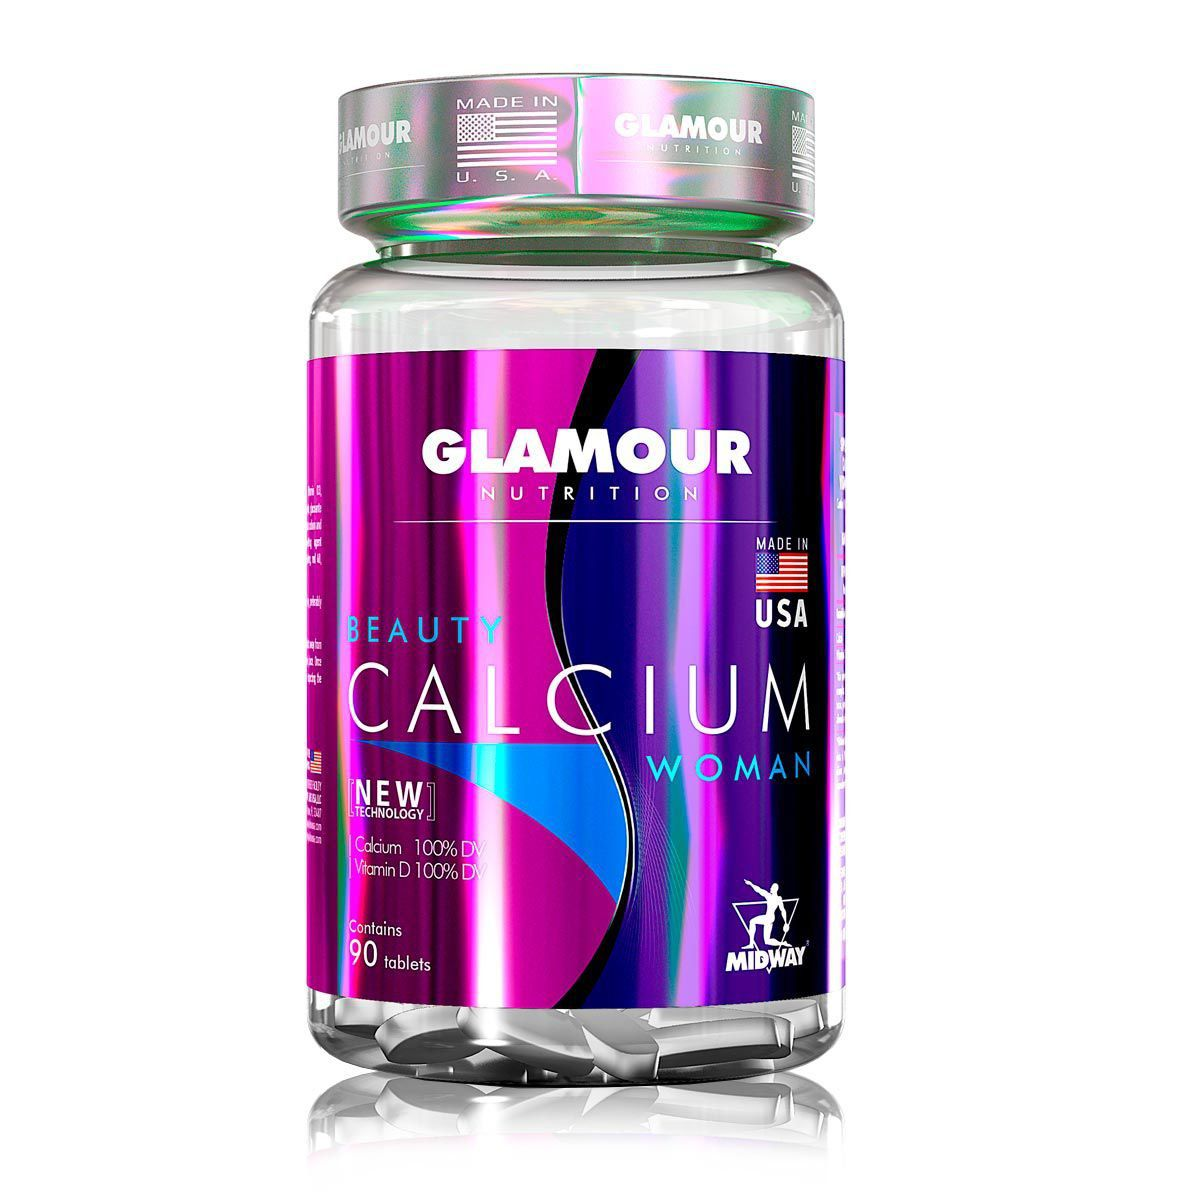 Beauty Calcium Woman 90 Tabs Glamour Nutrition - Midway